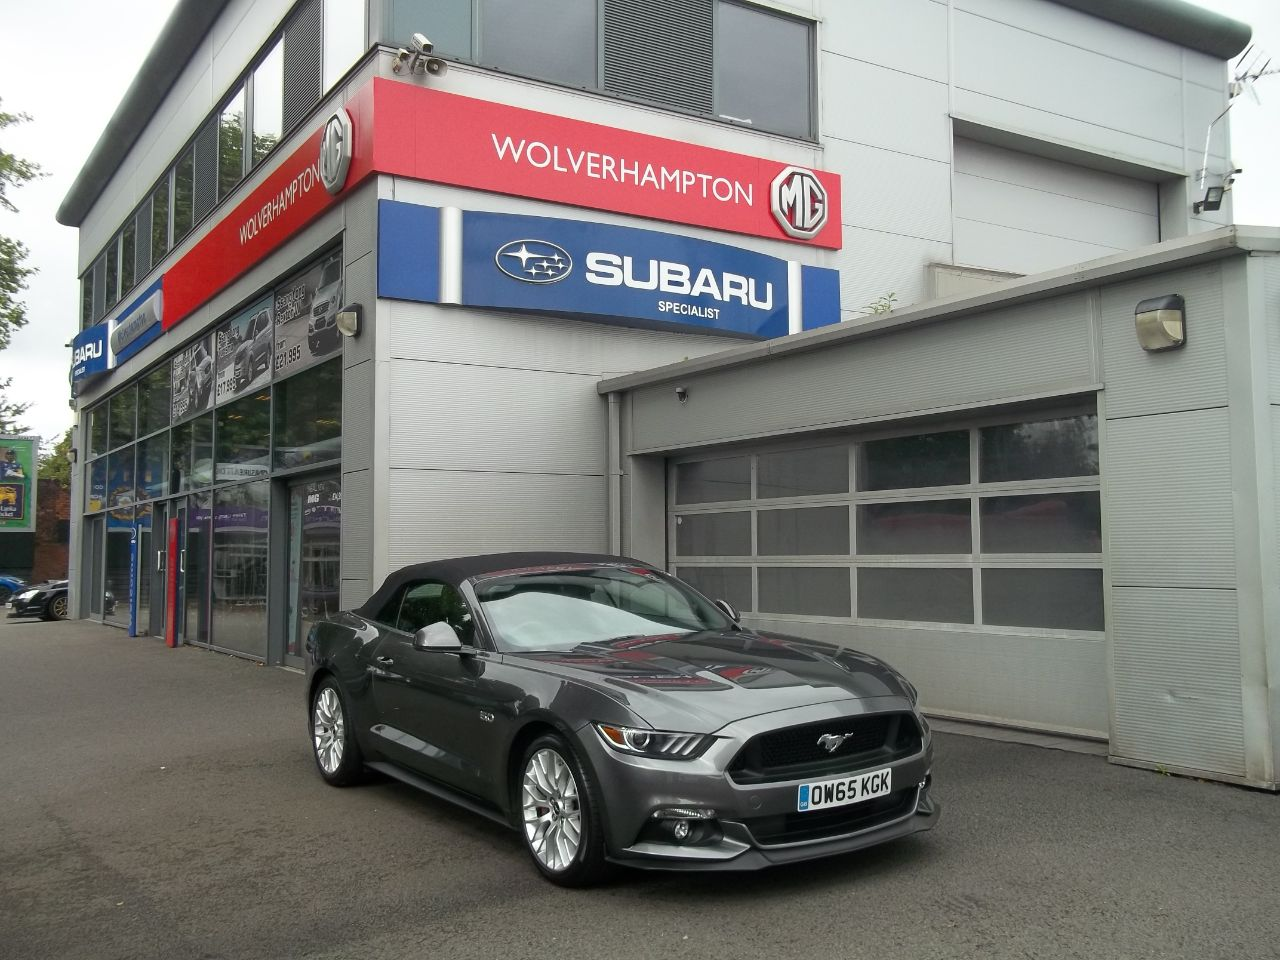 Used cars wolverhampton second hand cars west midlands bunning garages - Ford garage wolverhampton ...